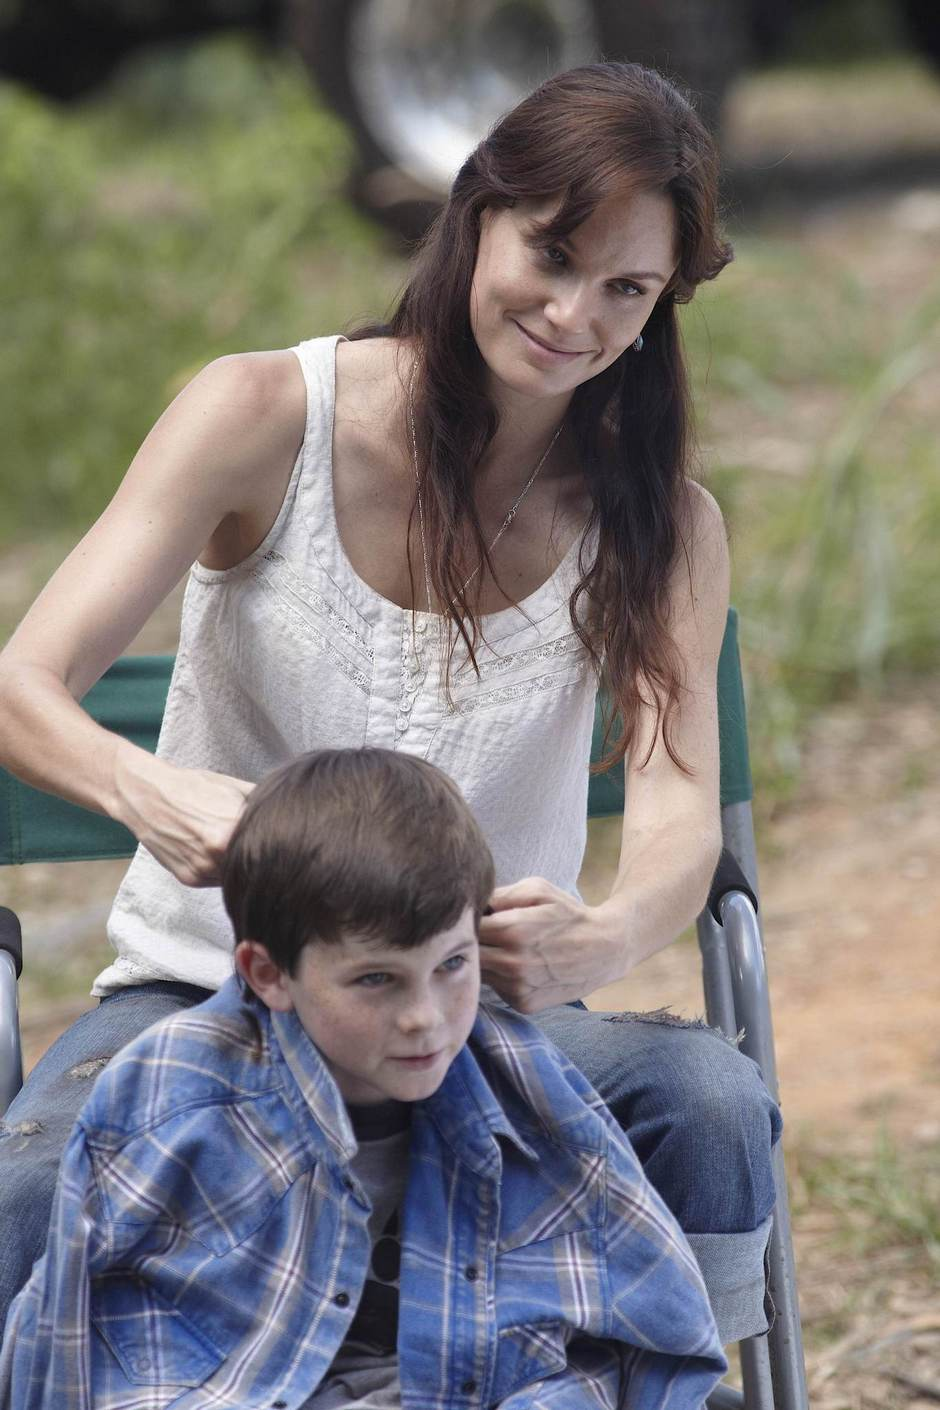 Sarah-Wayne-Callies-and-Chandler-Riggs-in-THE-WALKING-DEAD-Episode-1.03-Tell-it-to-the-Frogs-2.jpg